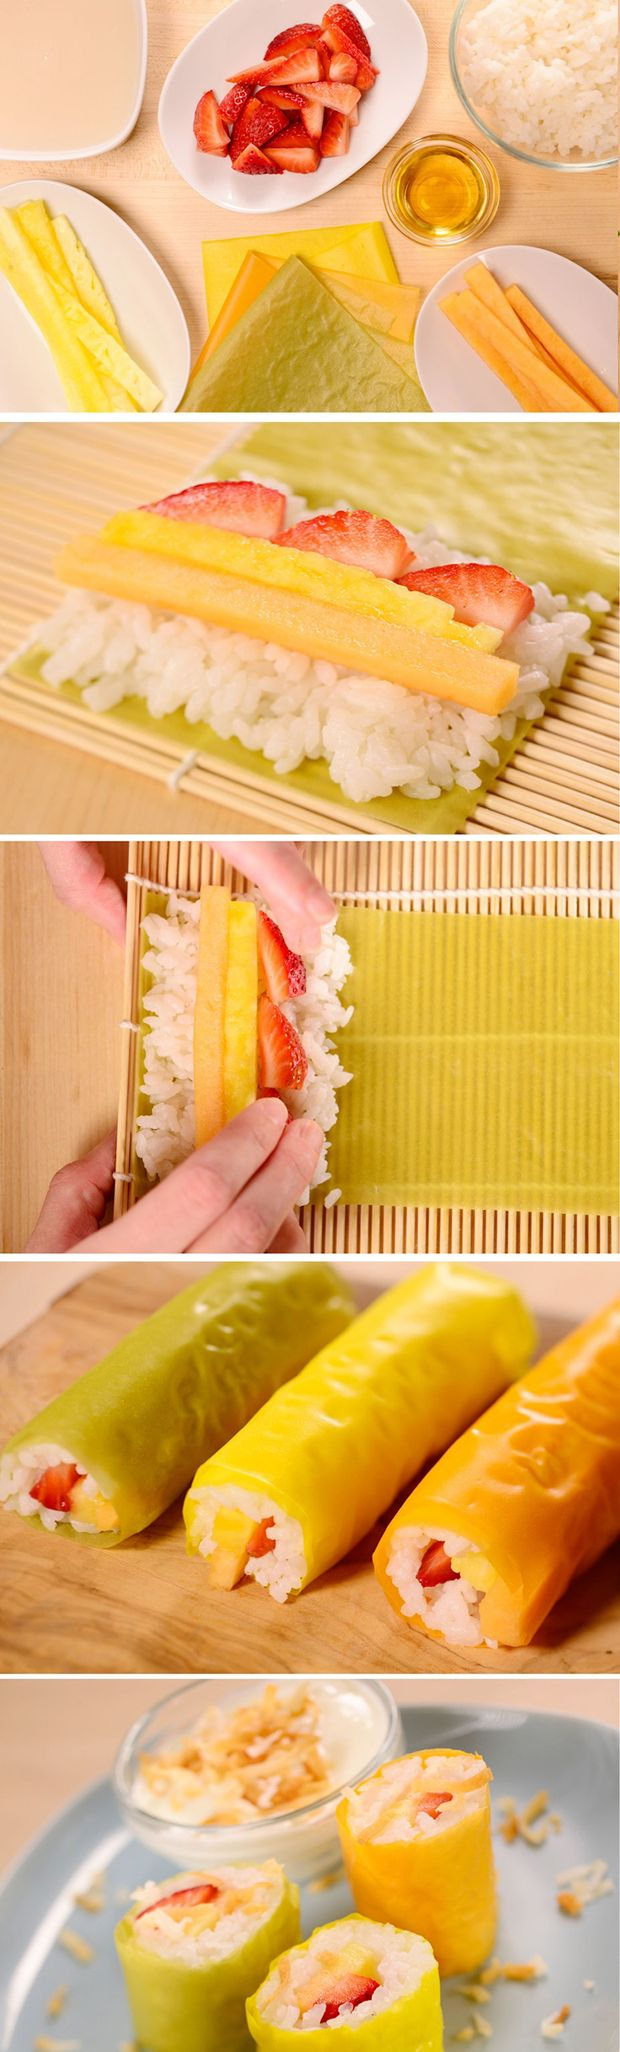 How to make Frushi- oh my god Archie would love me forever